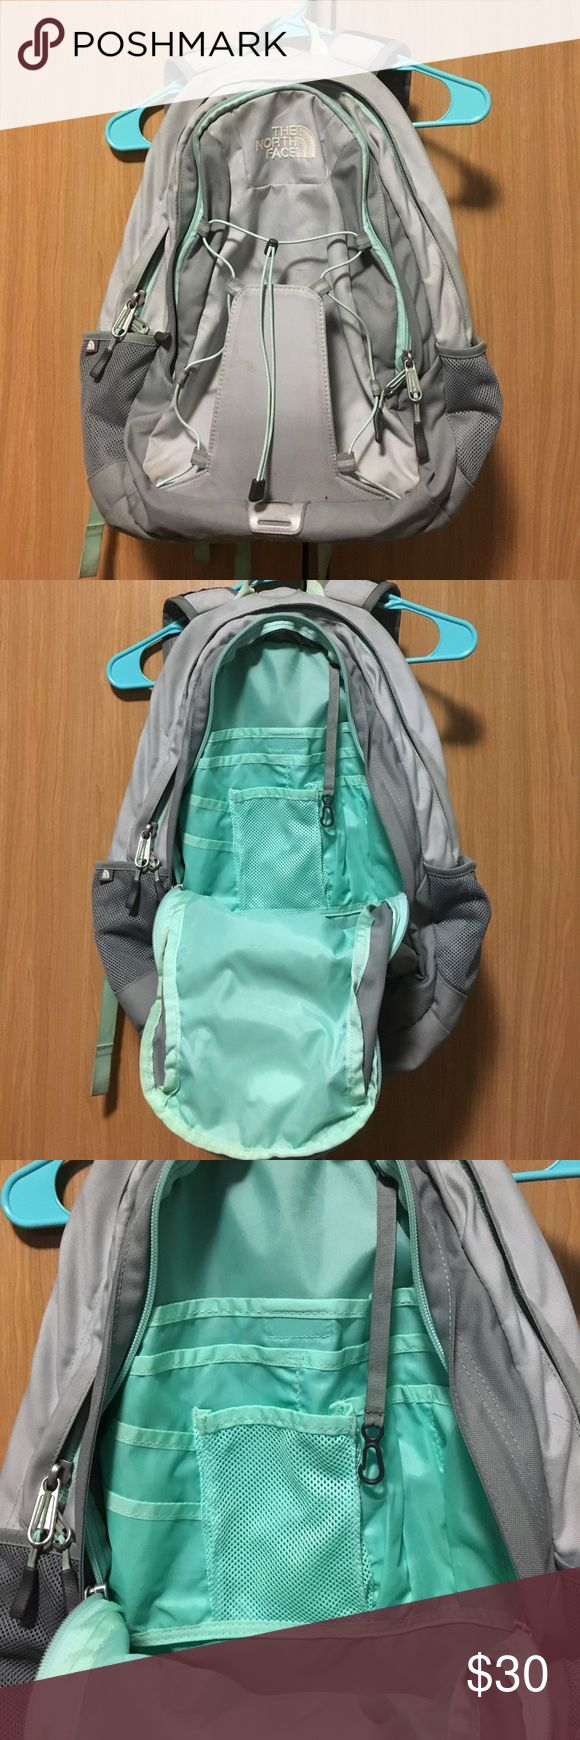 The North Face Jester backpack The North Face Jester back pack in mint/gray colors. This backpack has two bottle pockets on each side, a laptop pocket on the inside, another zip compartment full of smaller pockets, and bungee cords on the front. The inside does have ink stains from pens and the mint straps are a bit discolored. Other than those couple things the backpack is in very good condition. Asking $40 or best offer. The North Face Bags Backpacks